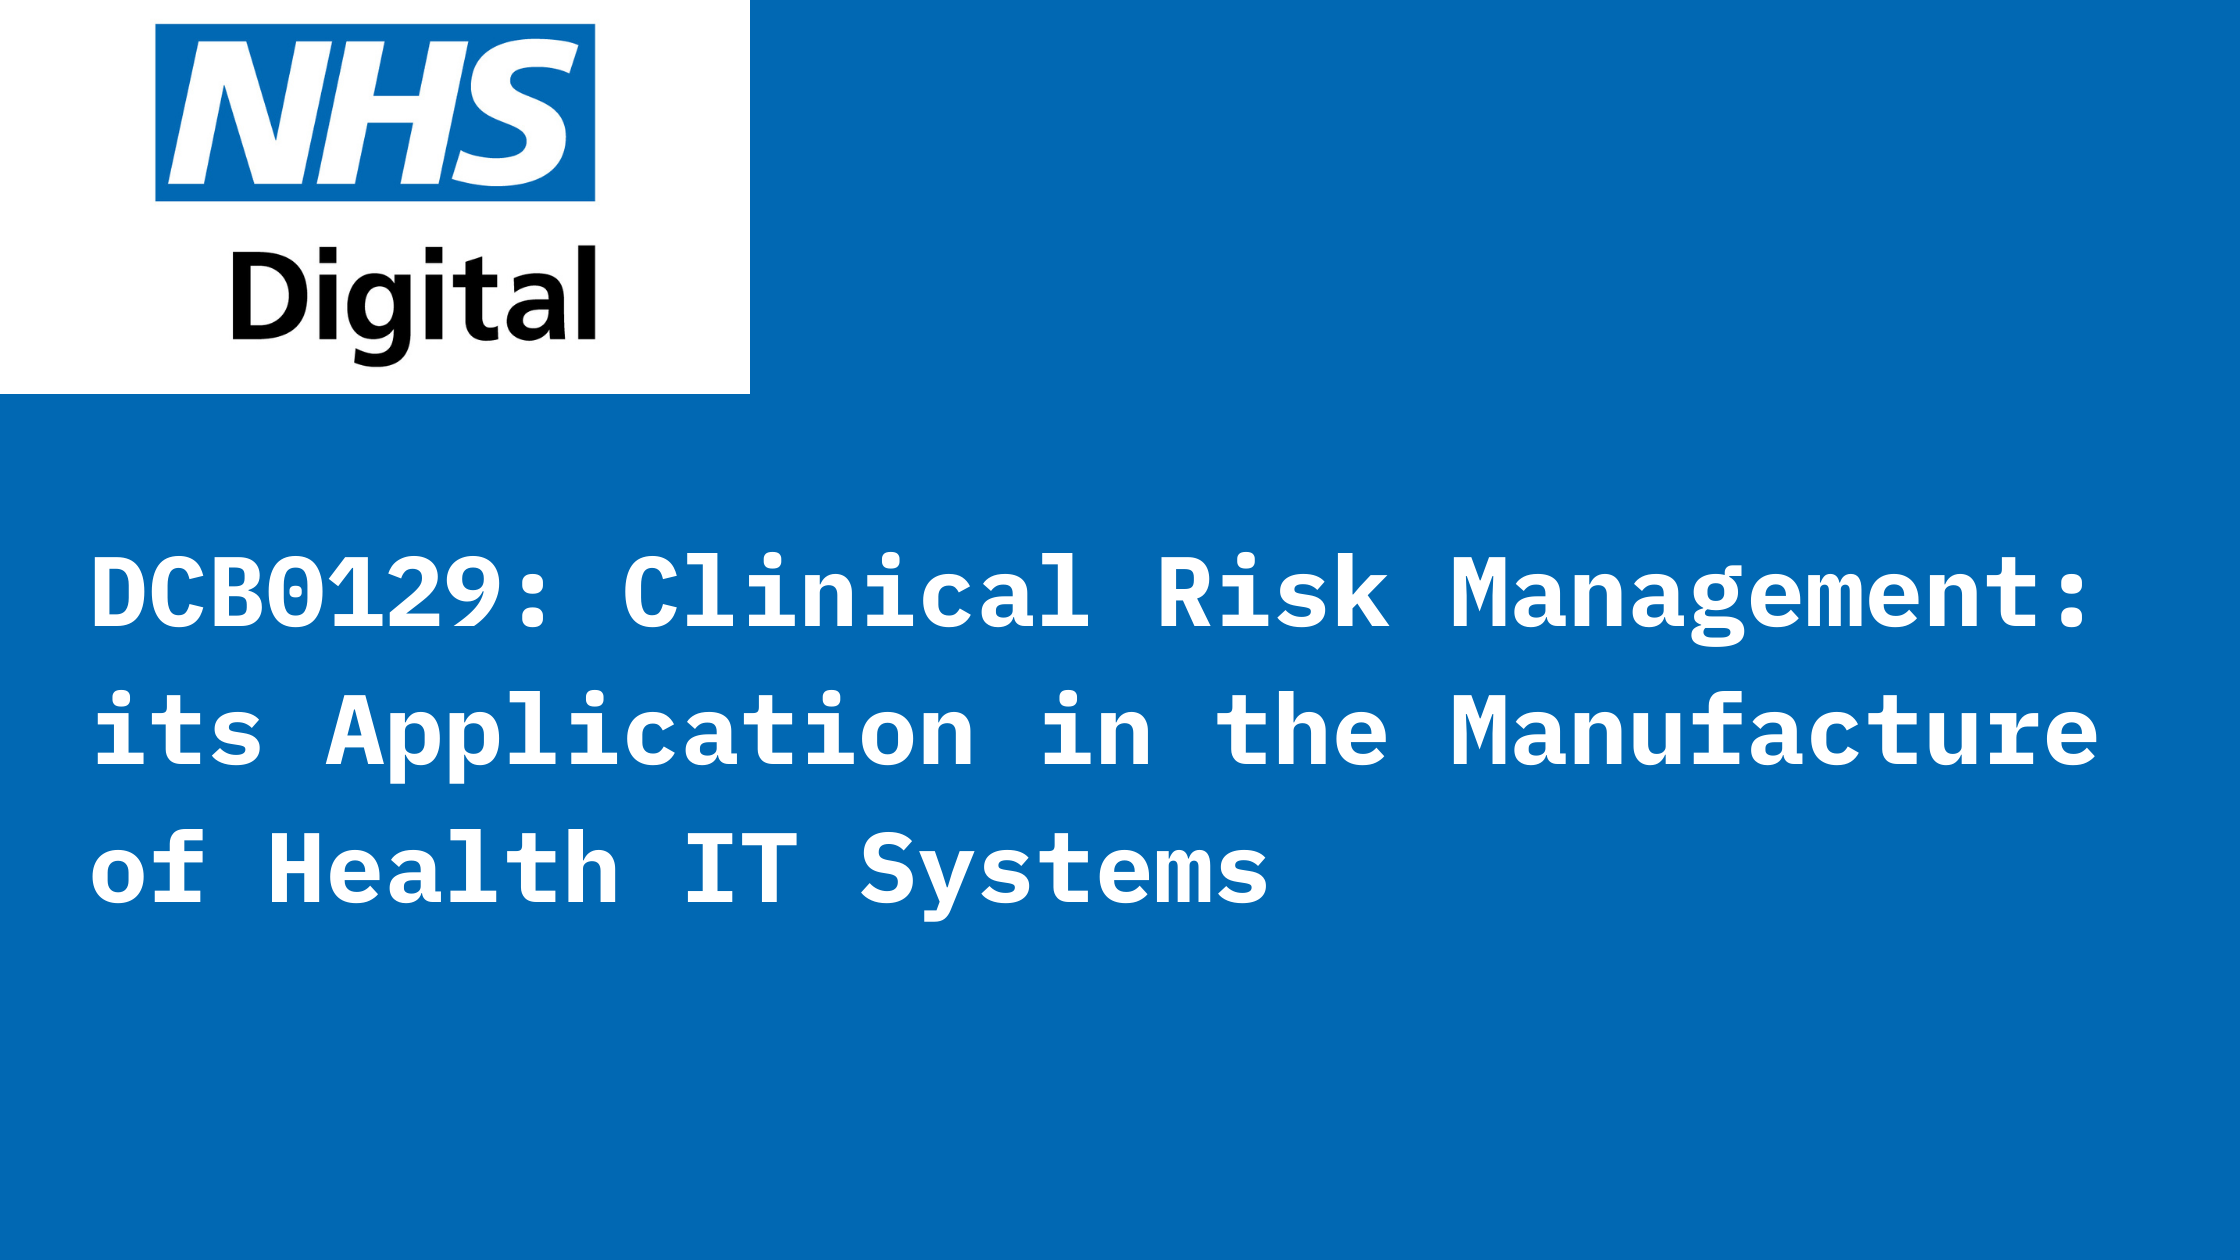 DCB0129 Clinical Risk Management its Application in the Manufacture of Health IT Systems